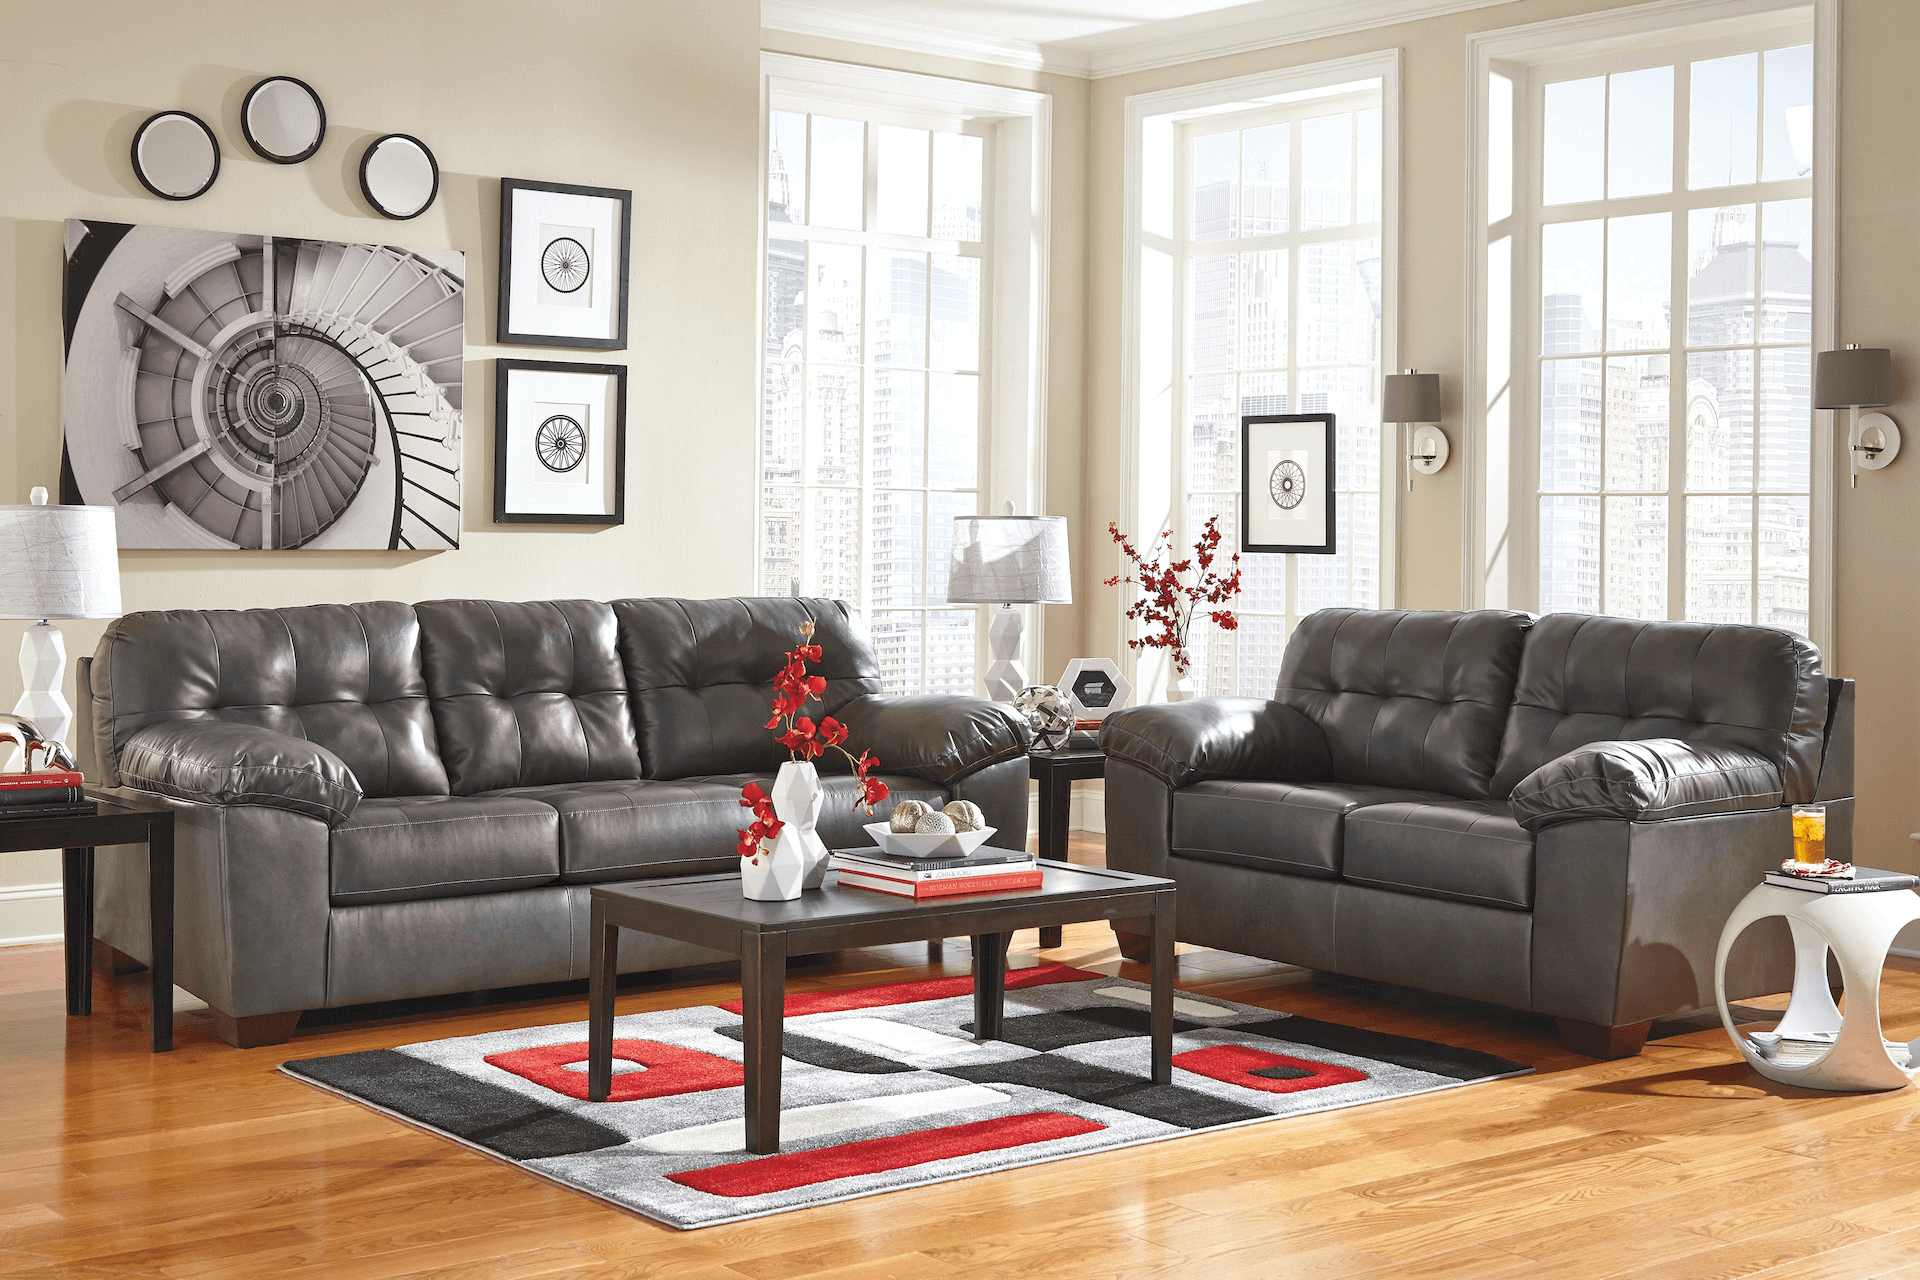 Atlantic_Furniture-Sofa_Sets-20102_hi-res